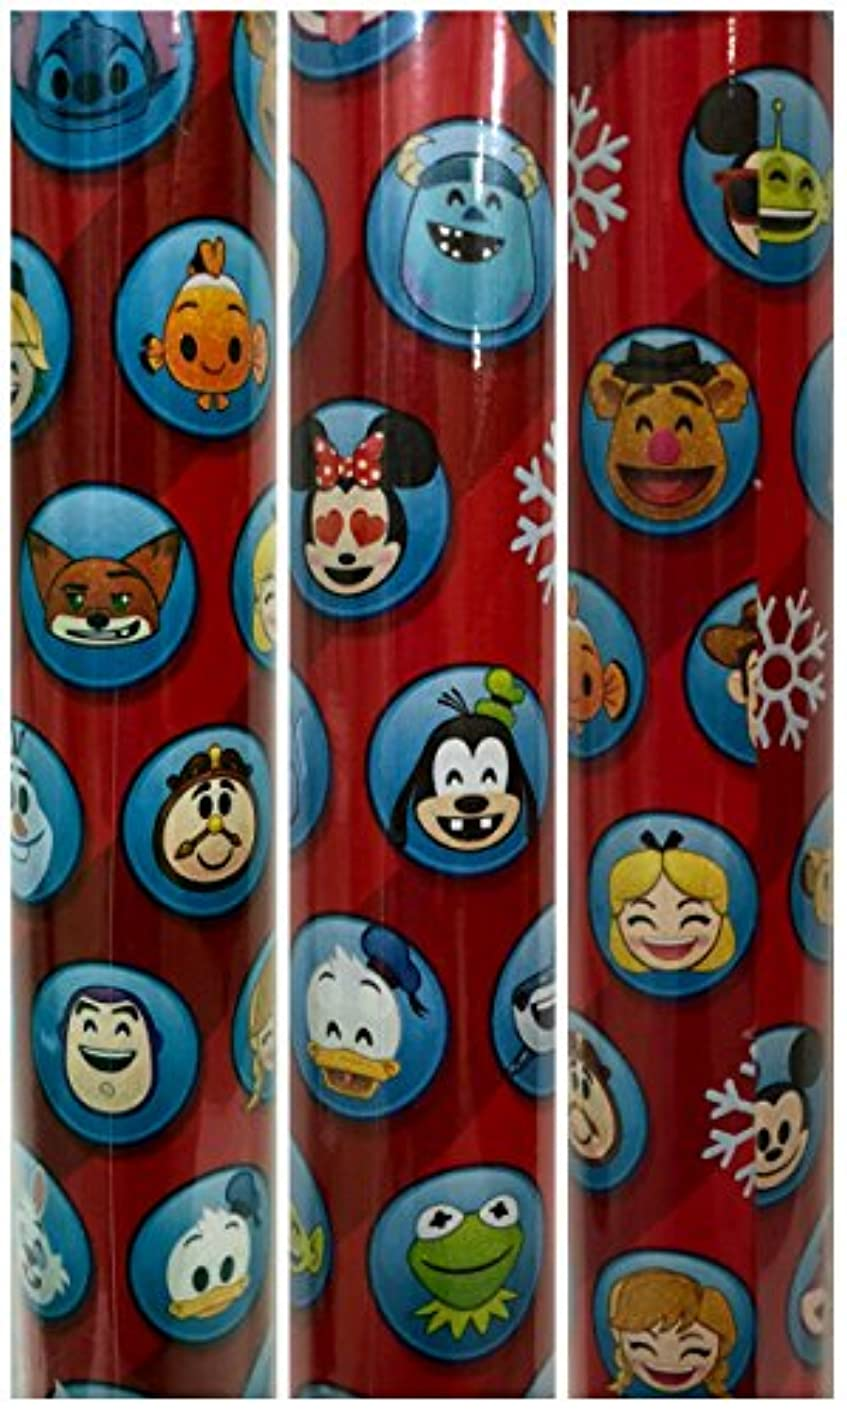 Disney Movie Characters Christmas Gift Wrapping Paper 40 sq ft 1 Roll